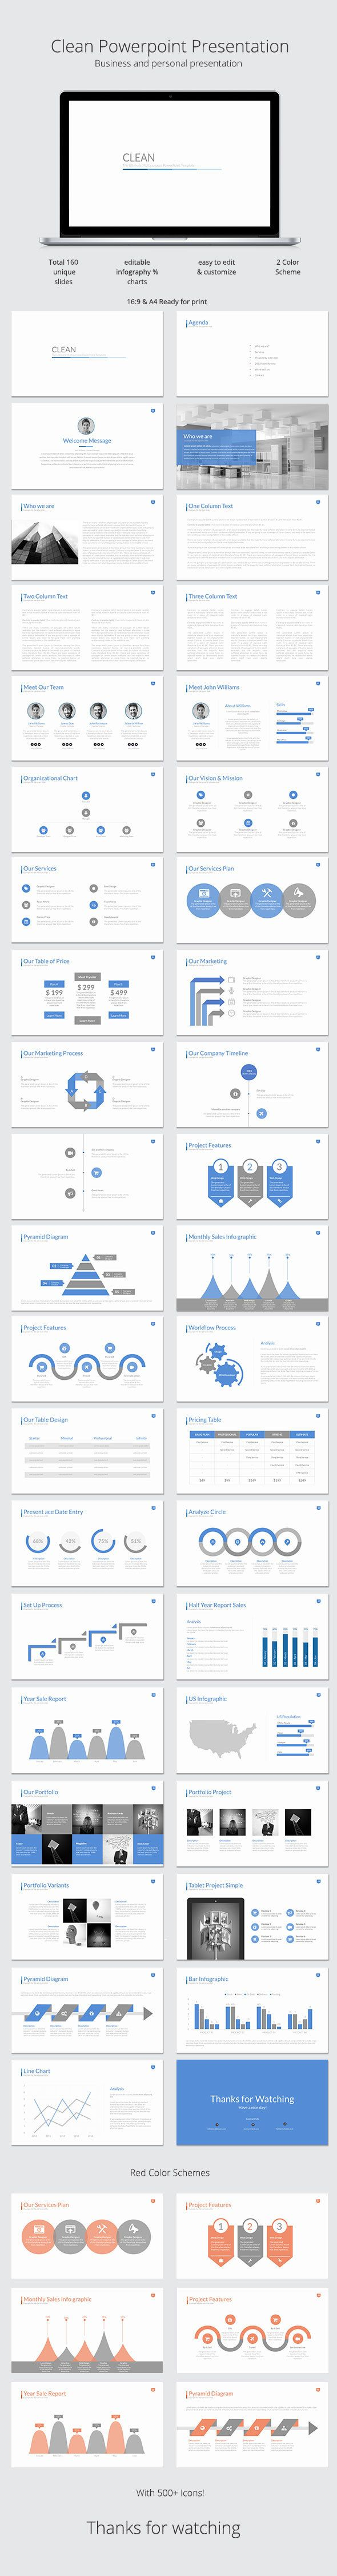 Coolmathgamesus  Inspiring  Ideas About Powerpoint Presentations On Pinterest With Lovely Clean Powerpoint Template With Amusing Microsoft Office Powerpoint Free Download  Full Version Also Powerpoint Presentation Steps In Addition How To Design Powerpoint Presentation And Microsoft Office Powerpoint Definition As Well As Ww Powerpoints Additionally Free Download Of Powerpoint  From Pinterestcom With Coolmathgamesus  Lovely  Ideas About Powerpoint Presentations On Pinterest With Amusing Clean Powerpoint Template And Inspiring Microsoft Office Powerpoint Free Download  Full Version Also Powerpoint Presentation Steps In Addition How To Design Powerpoint Presentation From Pinterestcom